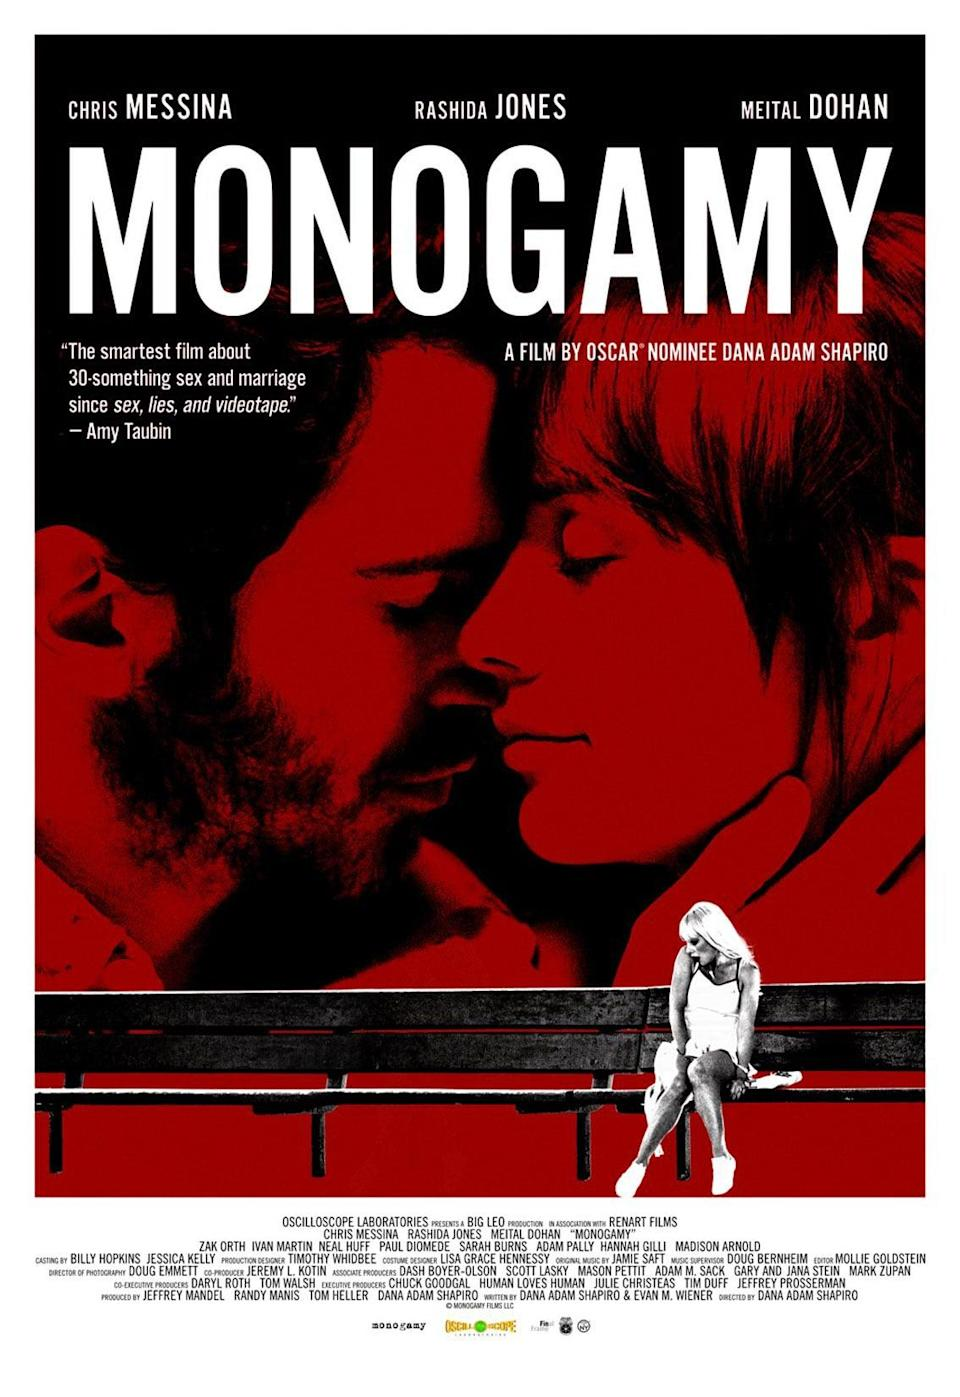 """<p>When a photographer begins to fall for his client, it puts his relationship at risk in this film starring Rashida Jones and Chris Messina.</p> <p><a href=""""http://www.hulu.com/movie/monogamy-e0697737-97e9-48ab-882c-7f53a9b3fe71"""" class=""""link rapid-noclick-resp"""" rel=""""nofollow noopener"""" target=""""_blank"""" data-ylk=""""slk:Watch Monogamy on Hulu."""">Watch <strong>Monogamy</strong> on Hulu.</a><br></p>"""